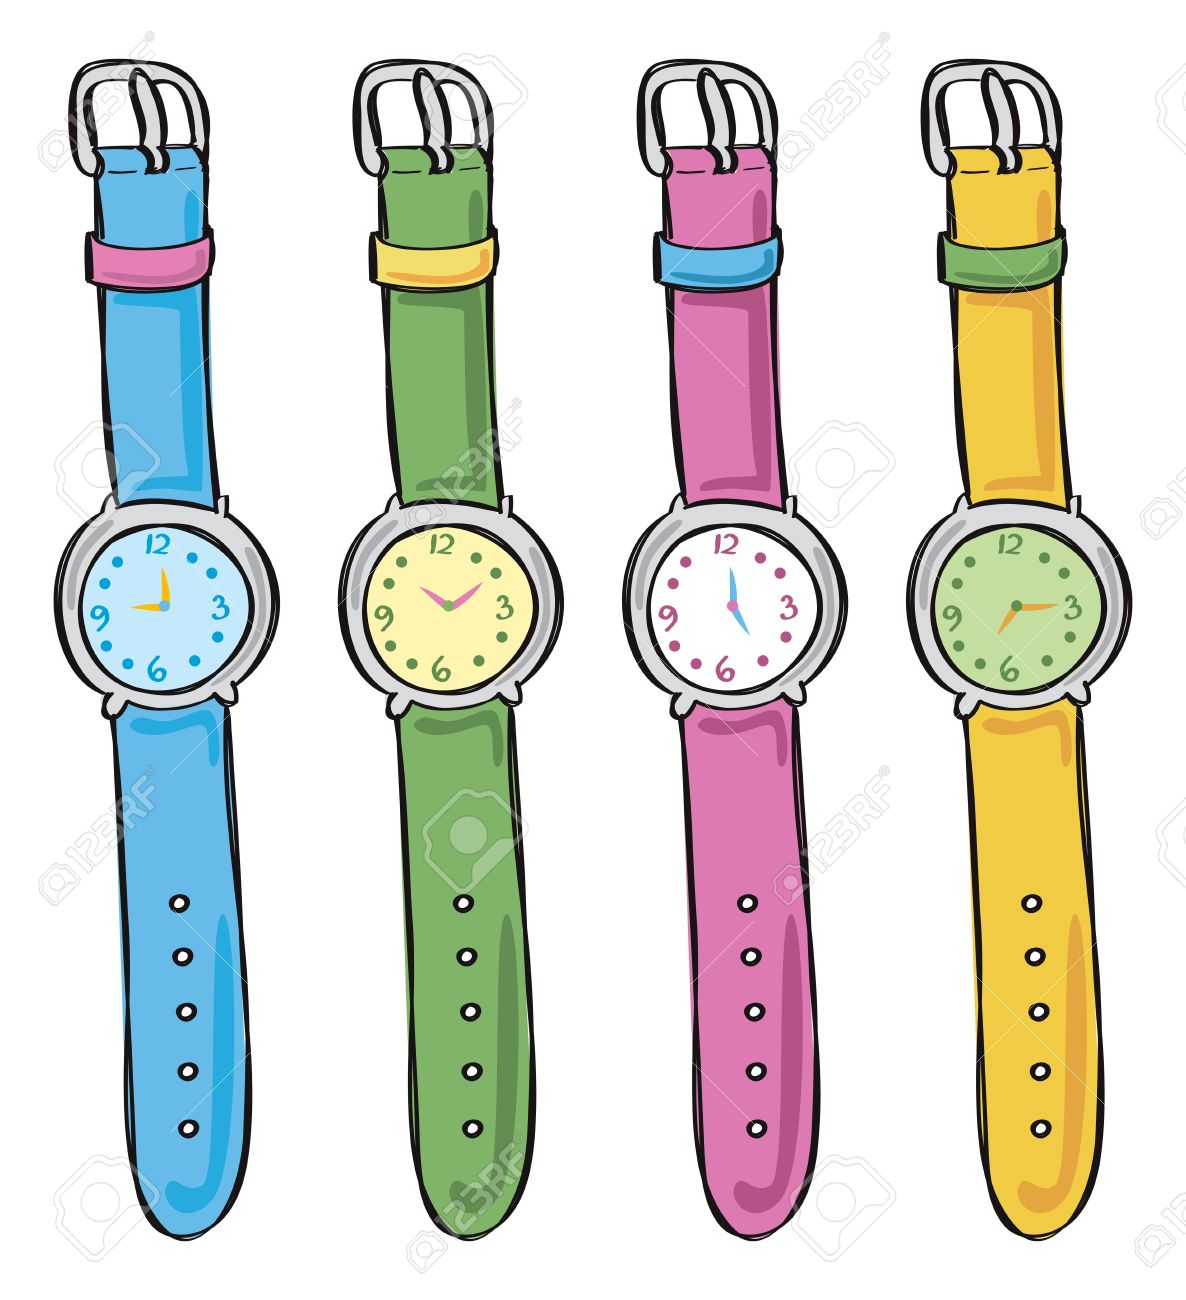 Wrist watches clipart.